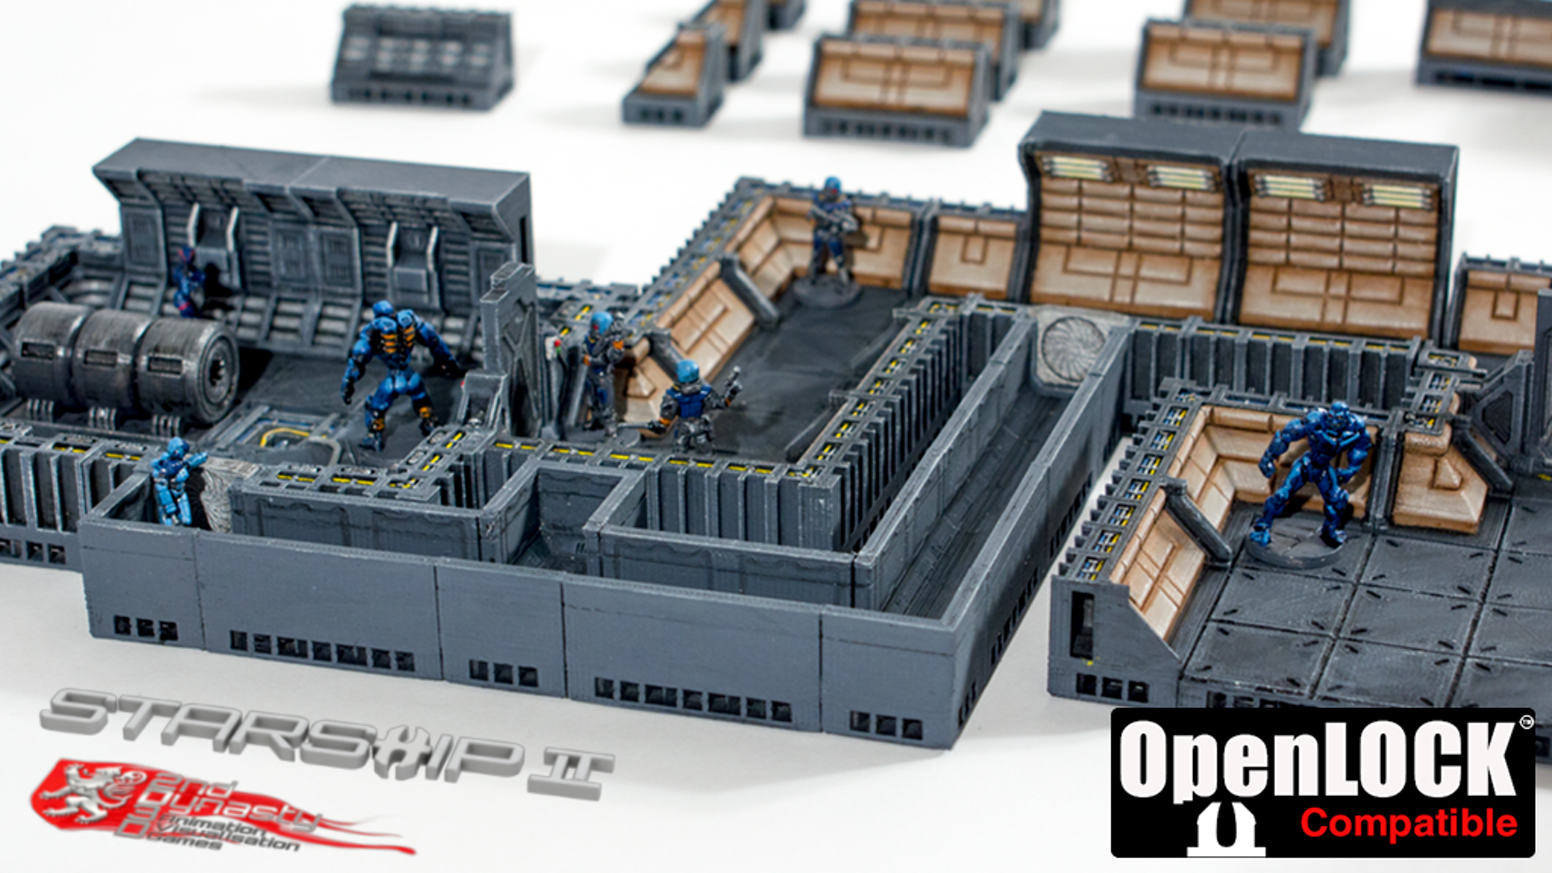 Starship II - 3d printable OpenLOCK-compatible Deck Plans is the top crowdfunding project launched today. Starship II - 3d printable OpenLOCK-compatible Deck Plans raised over $256329 from 248 backers. Other top projects include SwiftPaws - Capture the Flag for Dogs, Osmosis 3-in-1 Multi-Capsule Beverage Bar, SOLOSOCKS No-Shows - The World's Best Summer Socks...